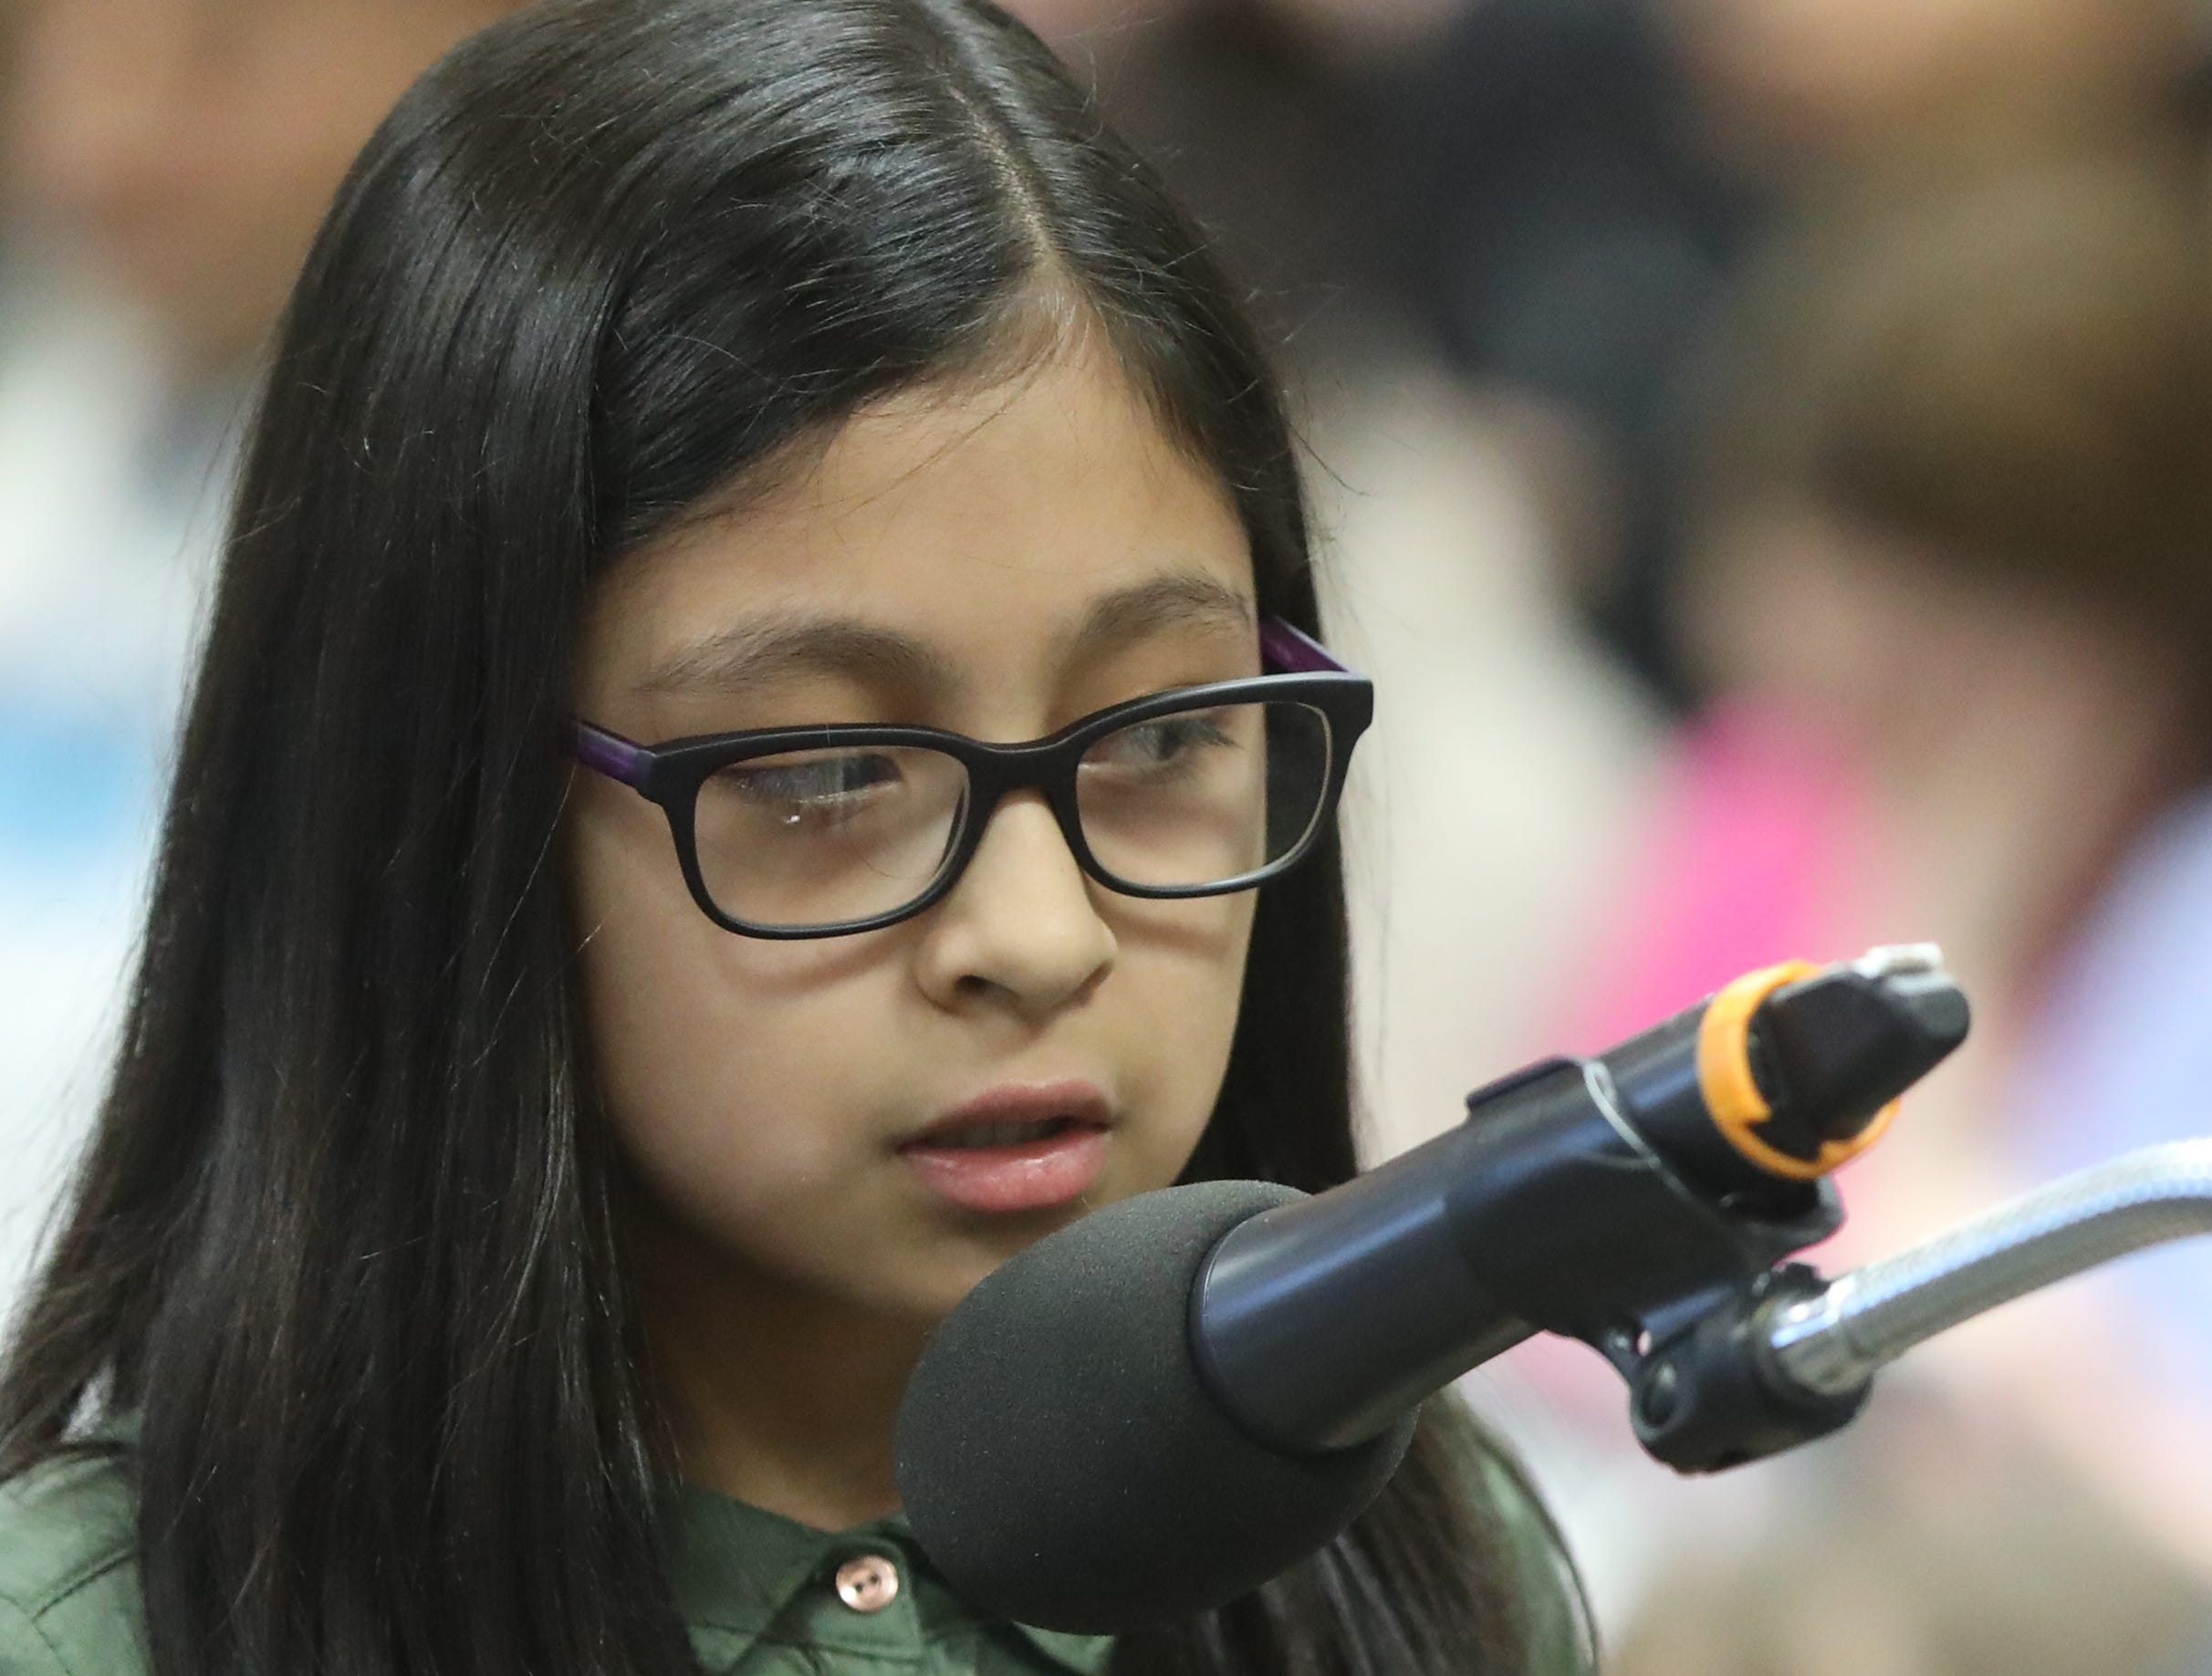 Alexa Gomez, of Paterson, competes in the first round of the 2019 North Jersey Spelling Bee, in Paramus. Thursday, March 14, 2019